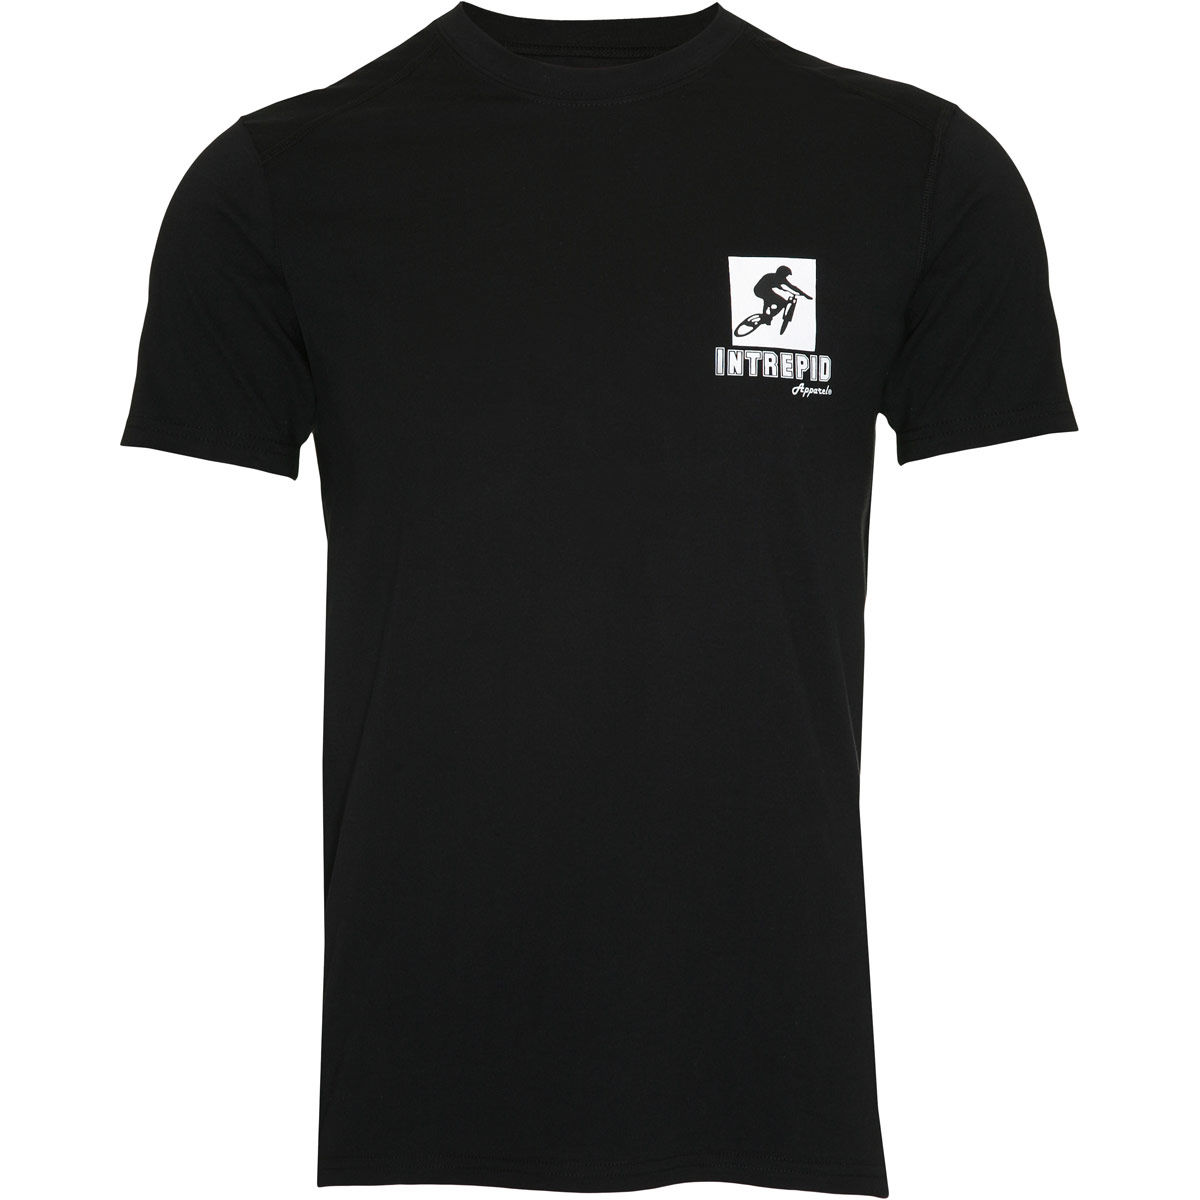 wiggle intrepid apparel retro logo t shirt t shirts